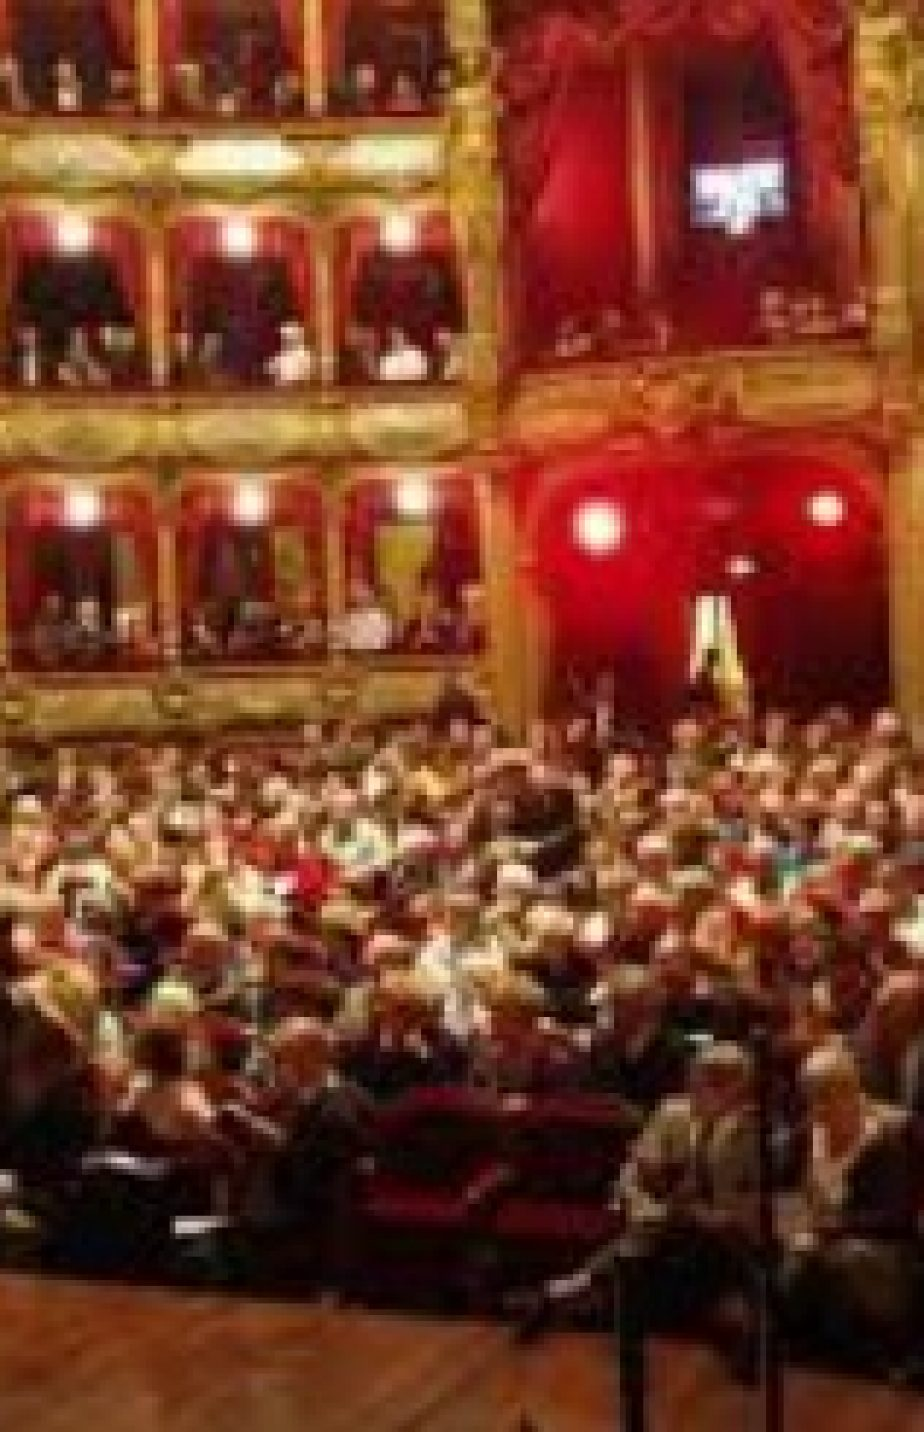 23rd April – Nice Philharmonic concert at the Opera House